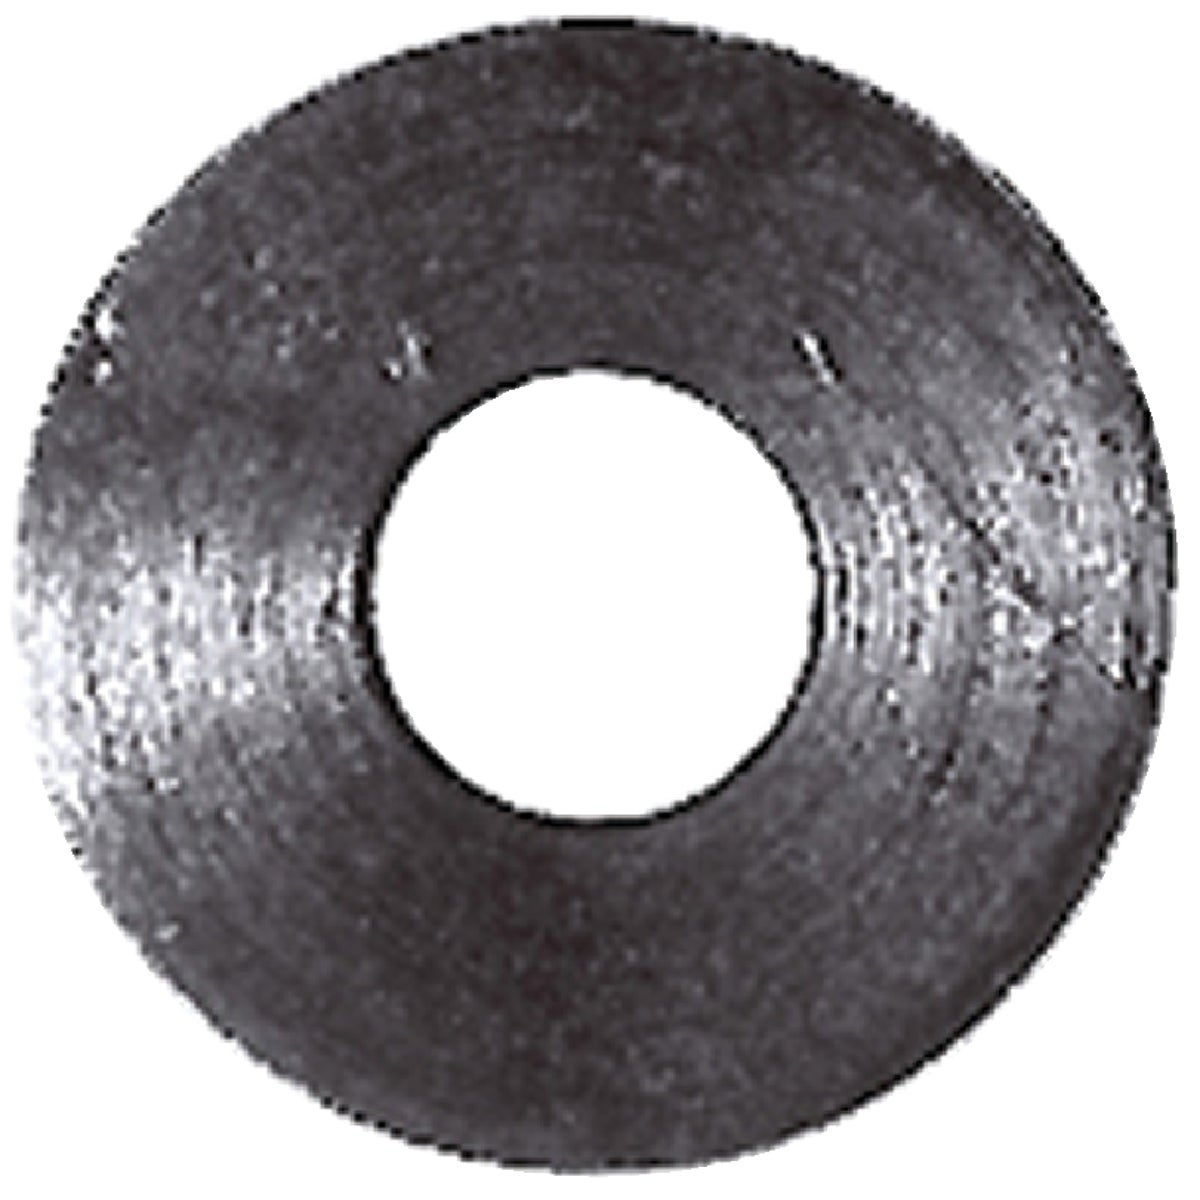 00 FLAT WASHER - 35062B by Danco Perfect Match